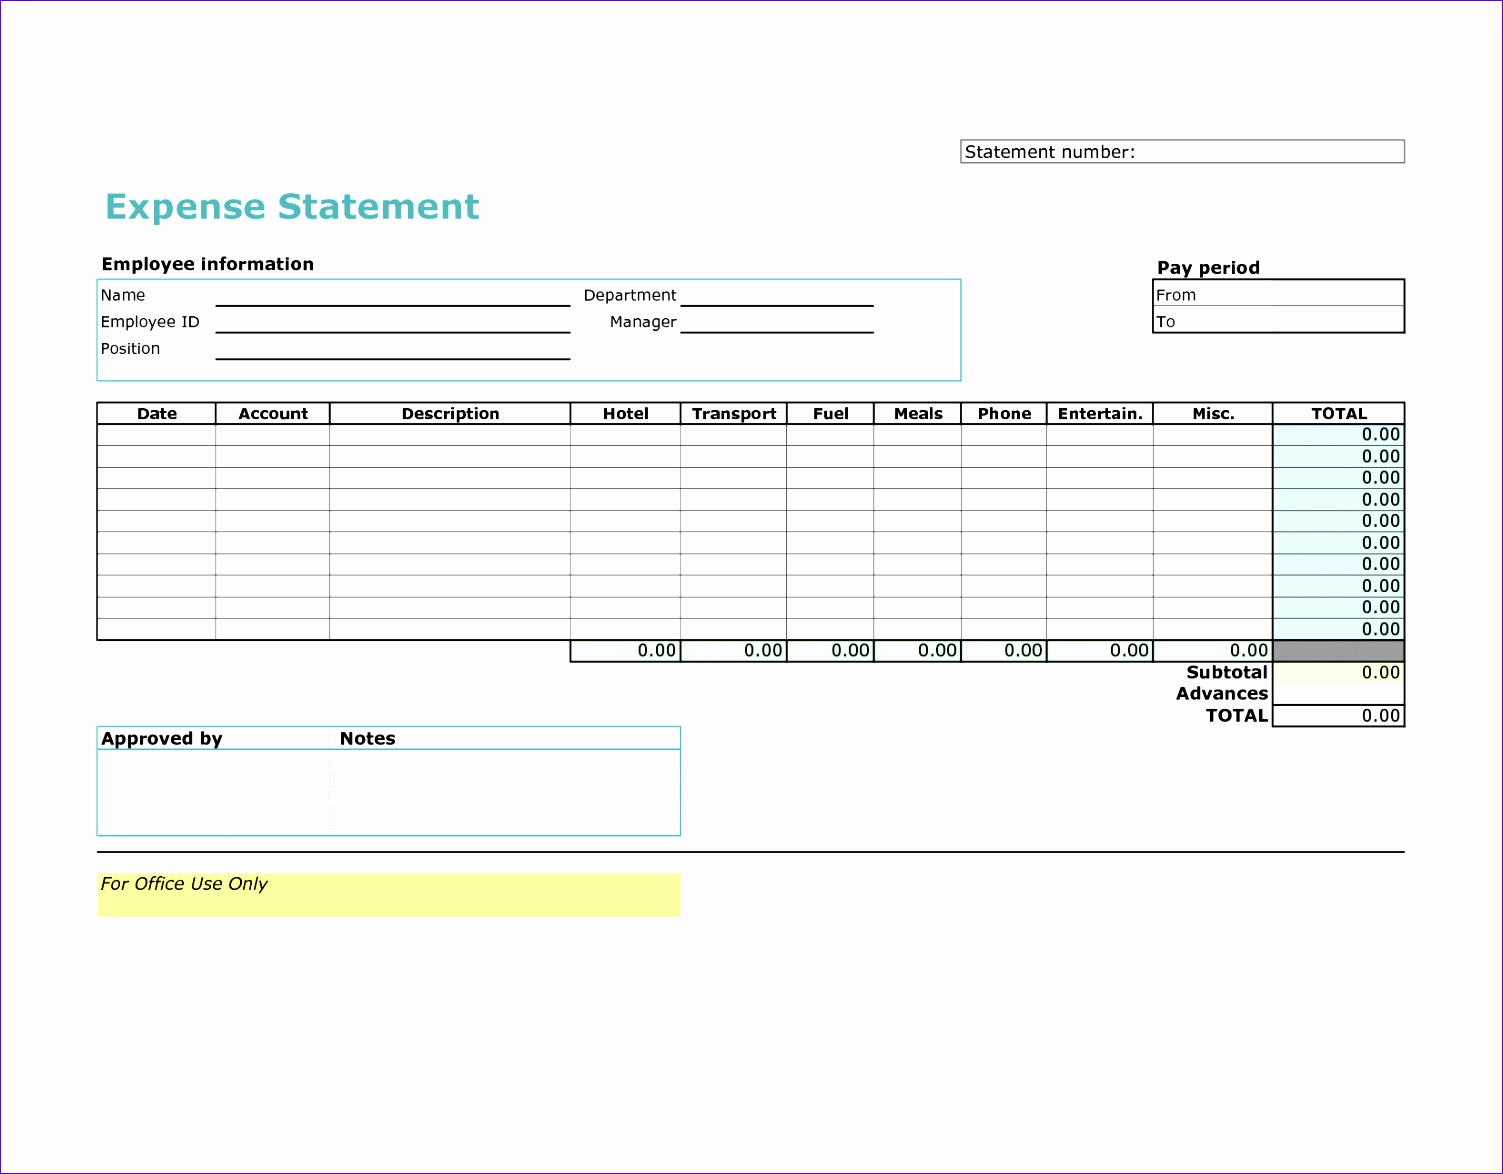 Expense Statement Template Excel